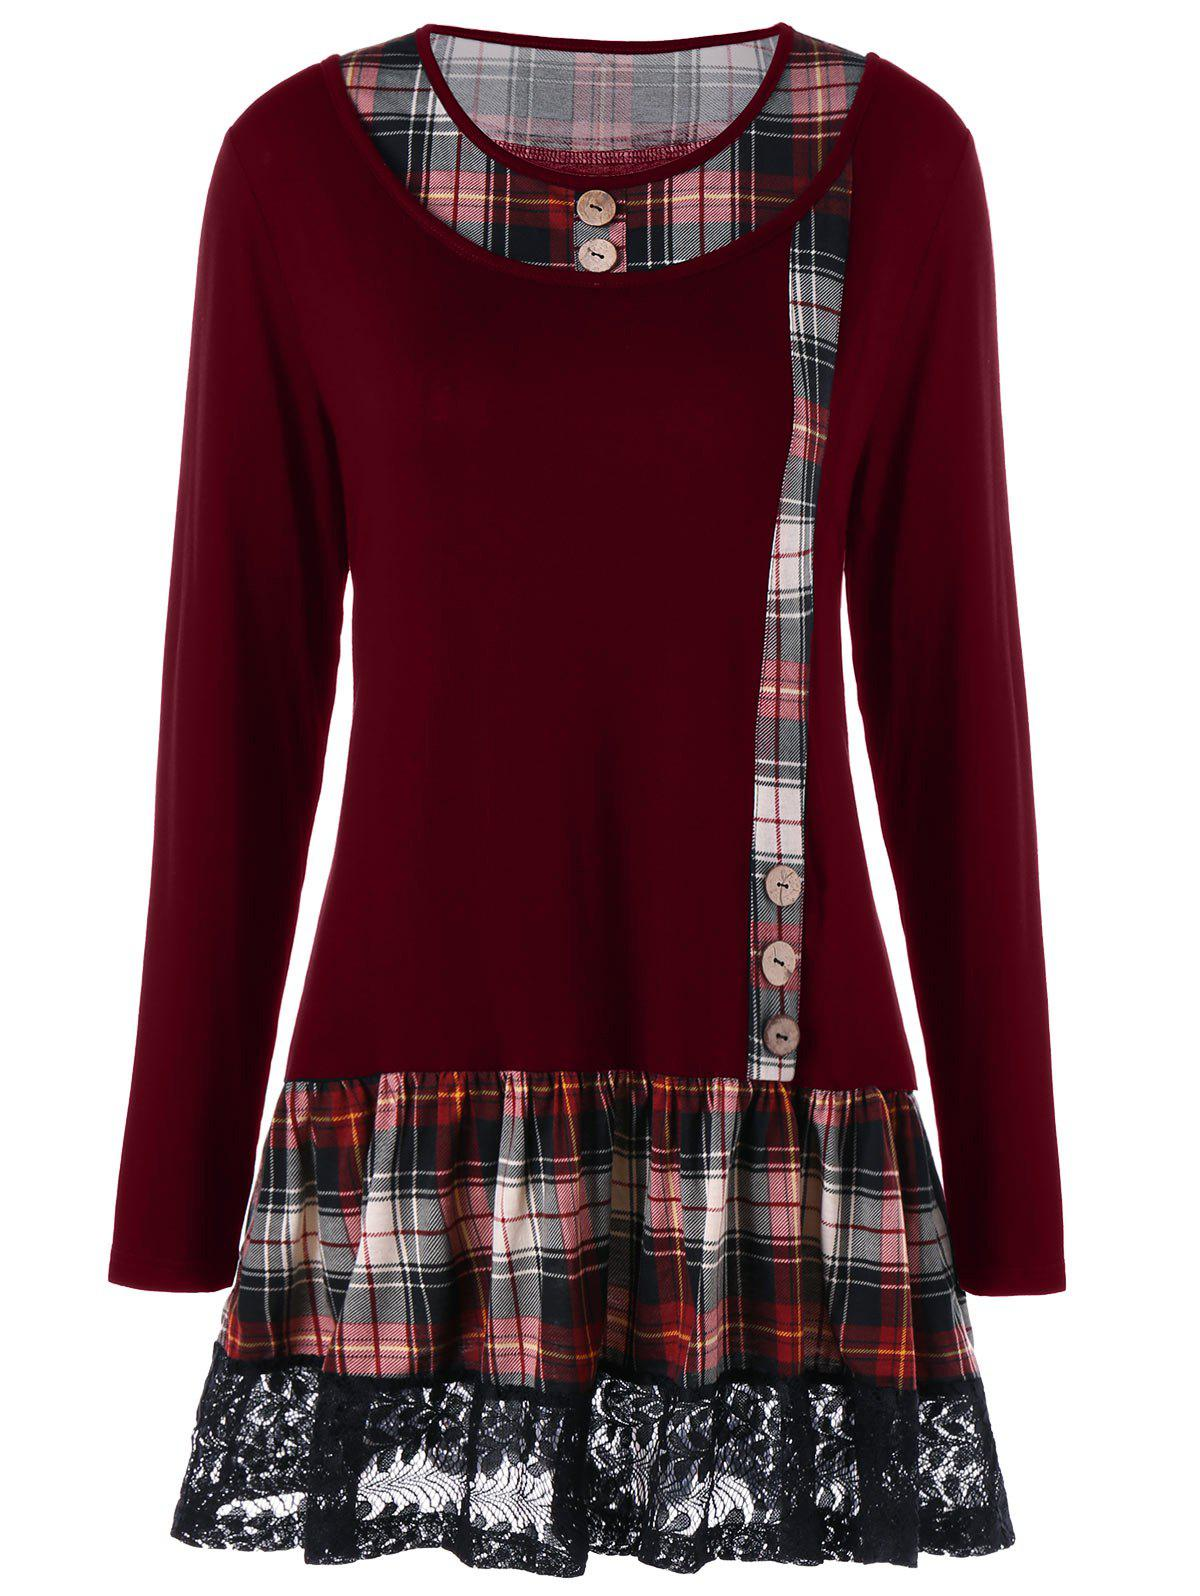 Plus Size Plaid Buttons Lace Panel Long Sleeve T-shirtWOMEN<br><br>Size: XL; Color: WINE RED; Material: Cotton,Polyester; Shirt Length: Long; Sleeve Length: Full; Collar: Scoop Neck; Style: Fashion; Season: Fall,Spring; Embellishment: Button,Lace,Panel; Pattern Type: Plaid; Weight: 0.3300kg; Package Contents: 1 x T-shirt;